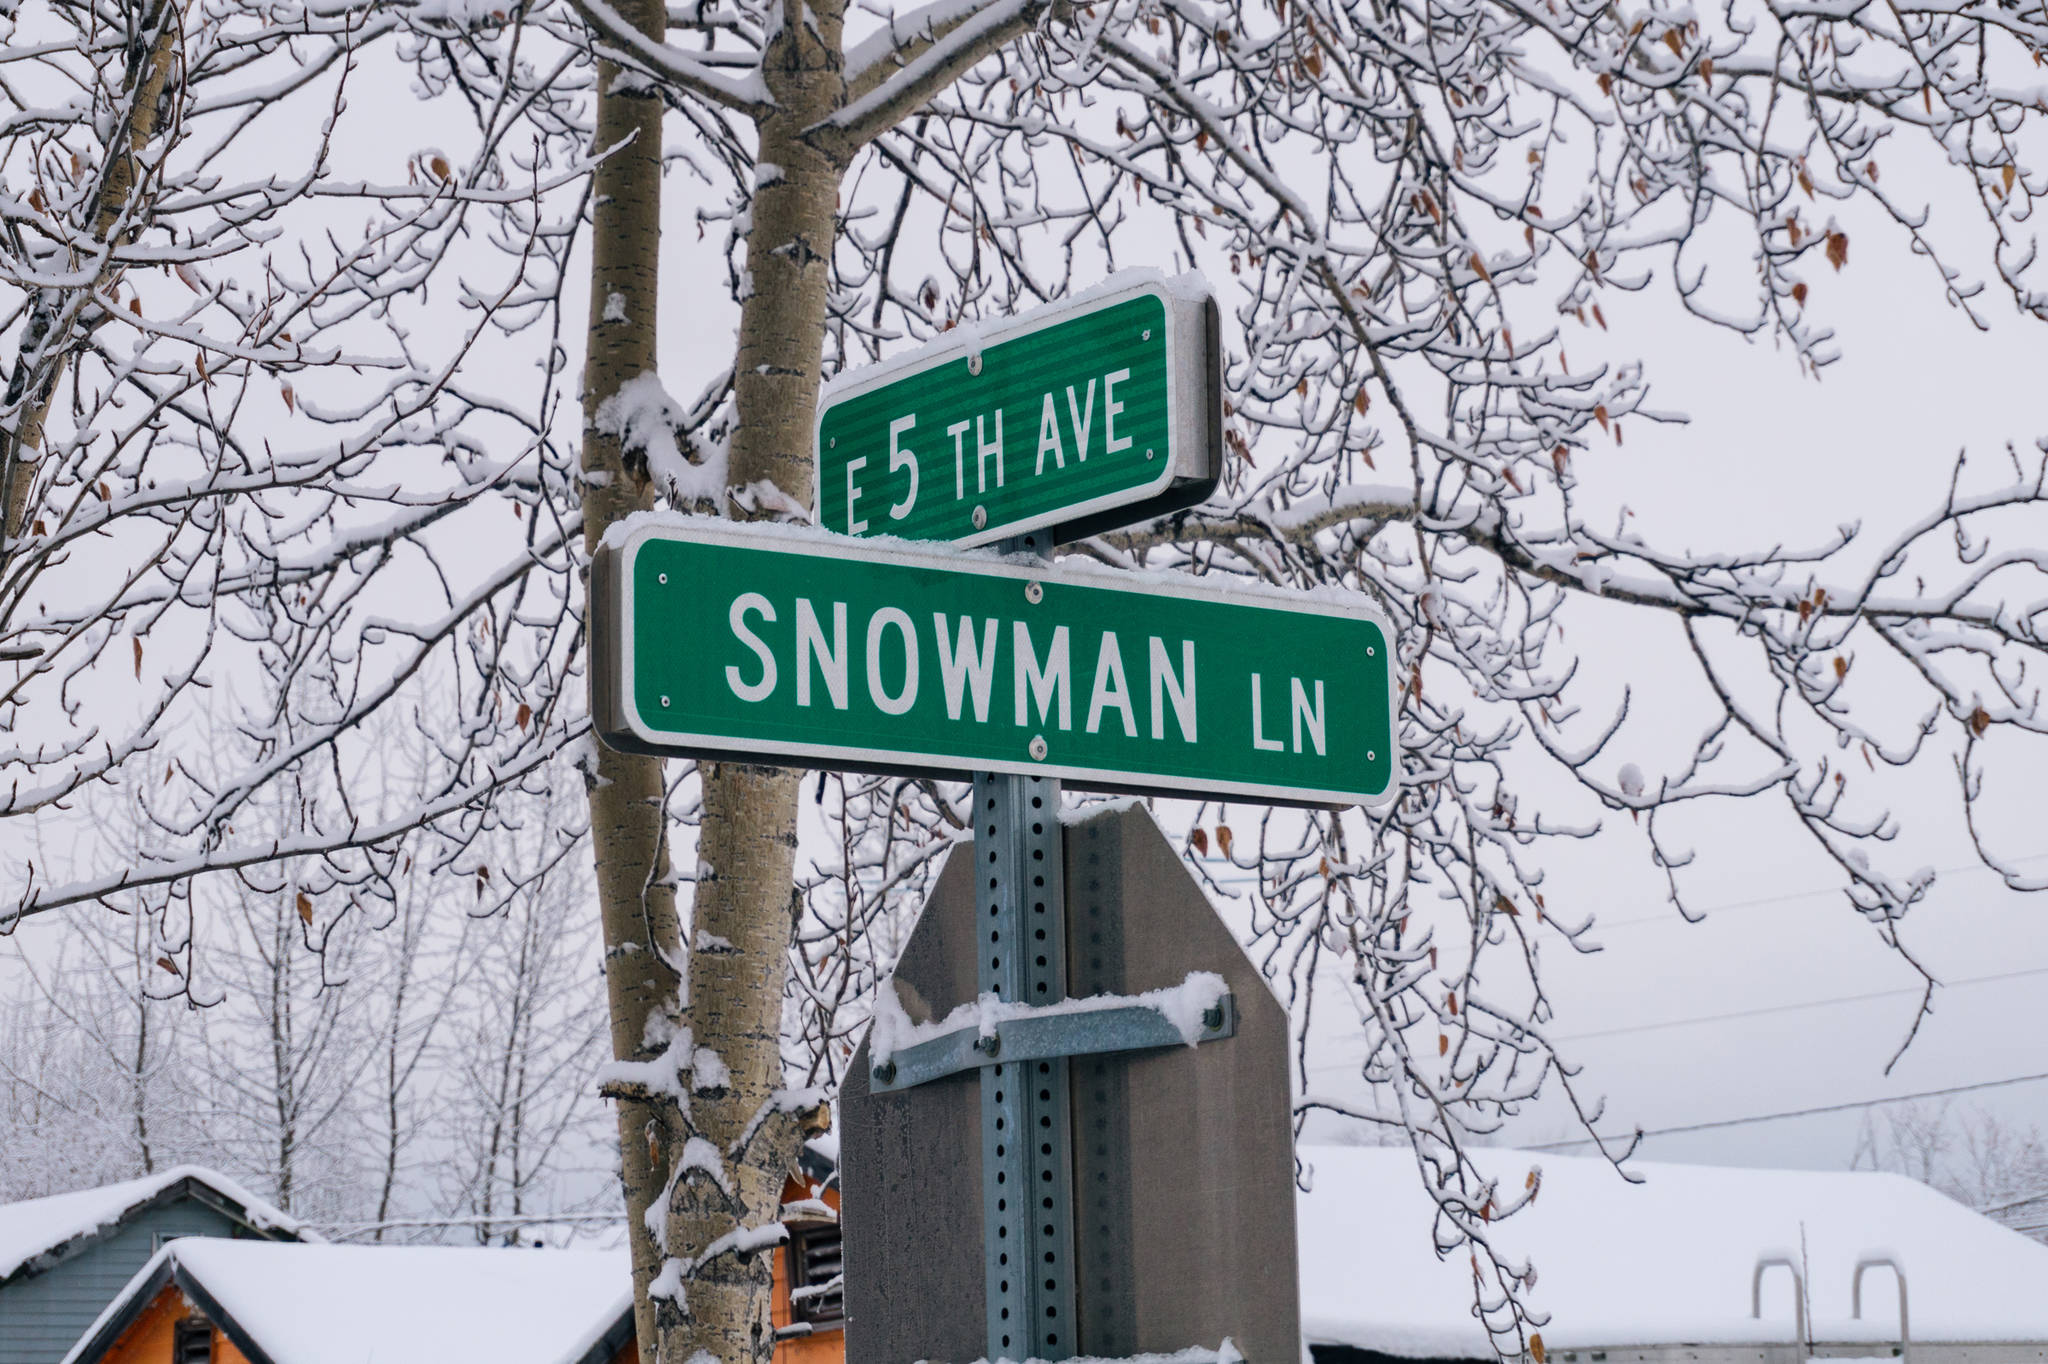 Snowman Lane street sign in North Pole Alaska. (Gabe Donohoe | For the Juneau Empire)